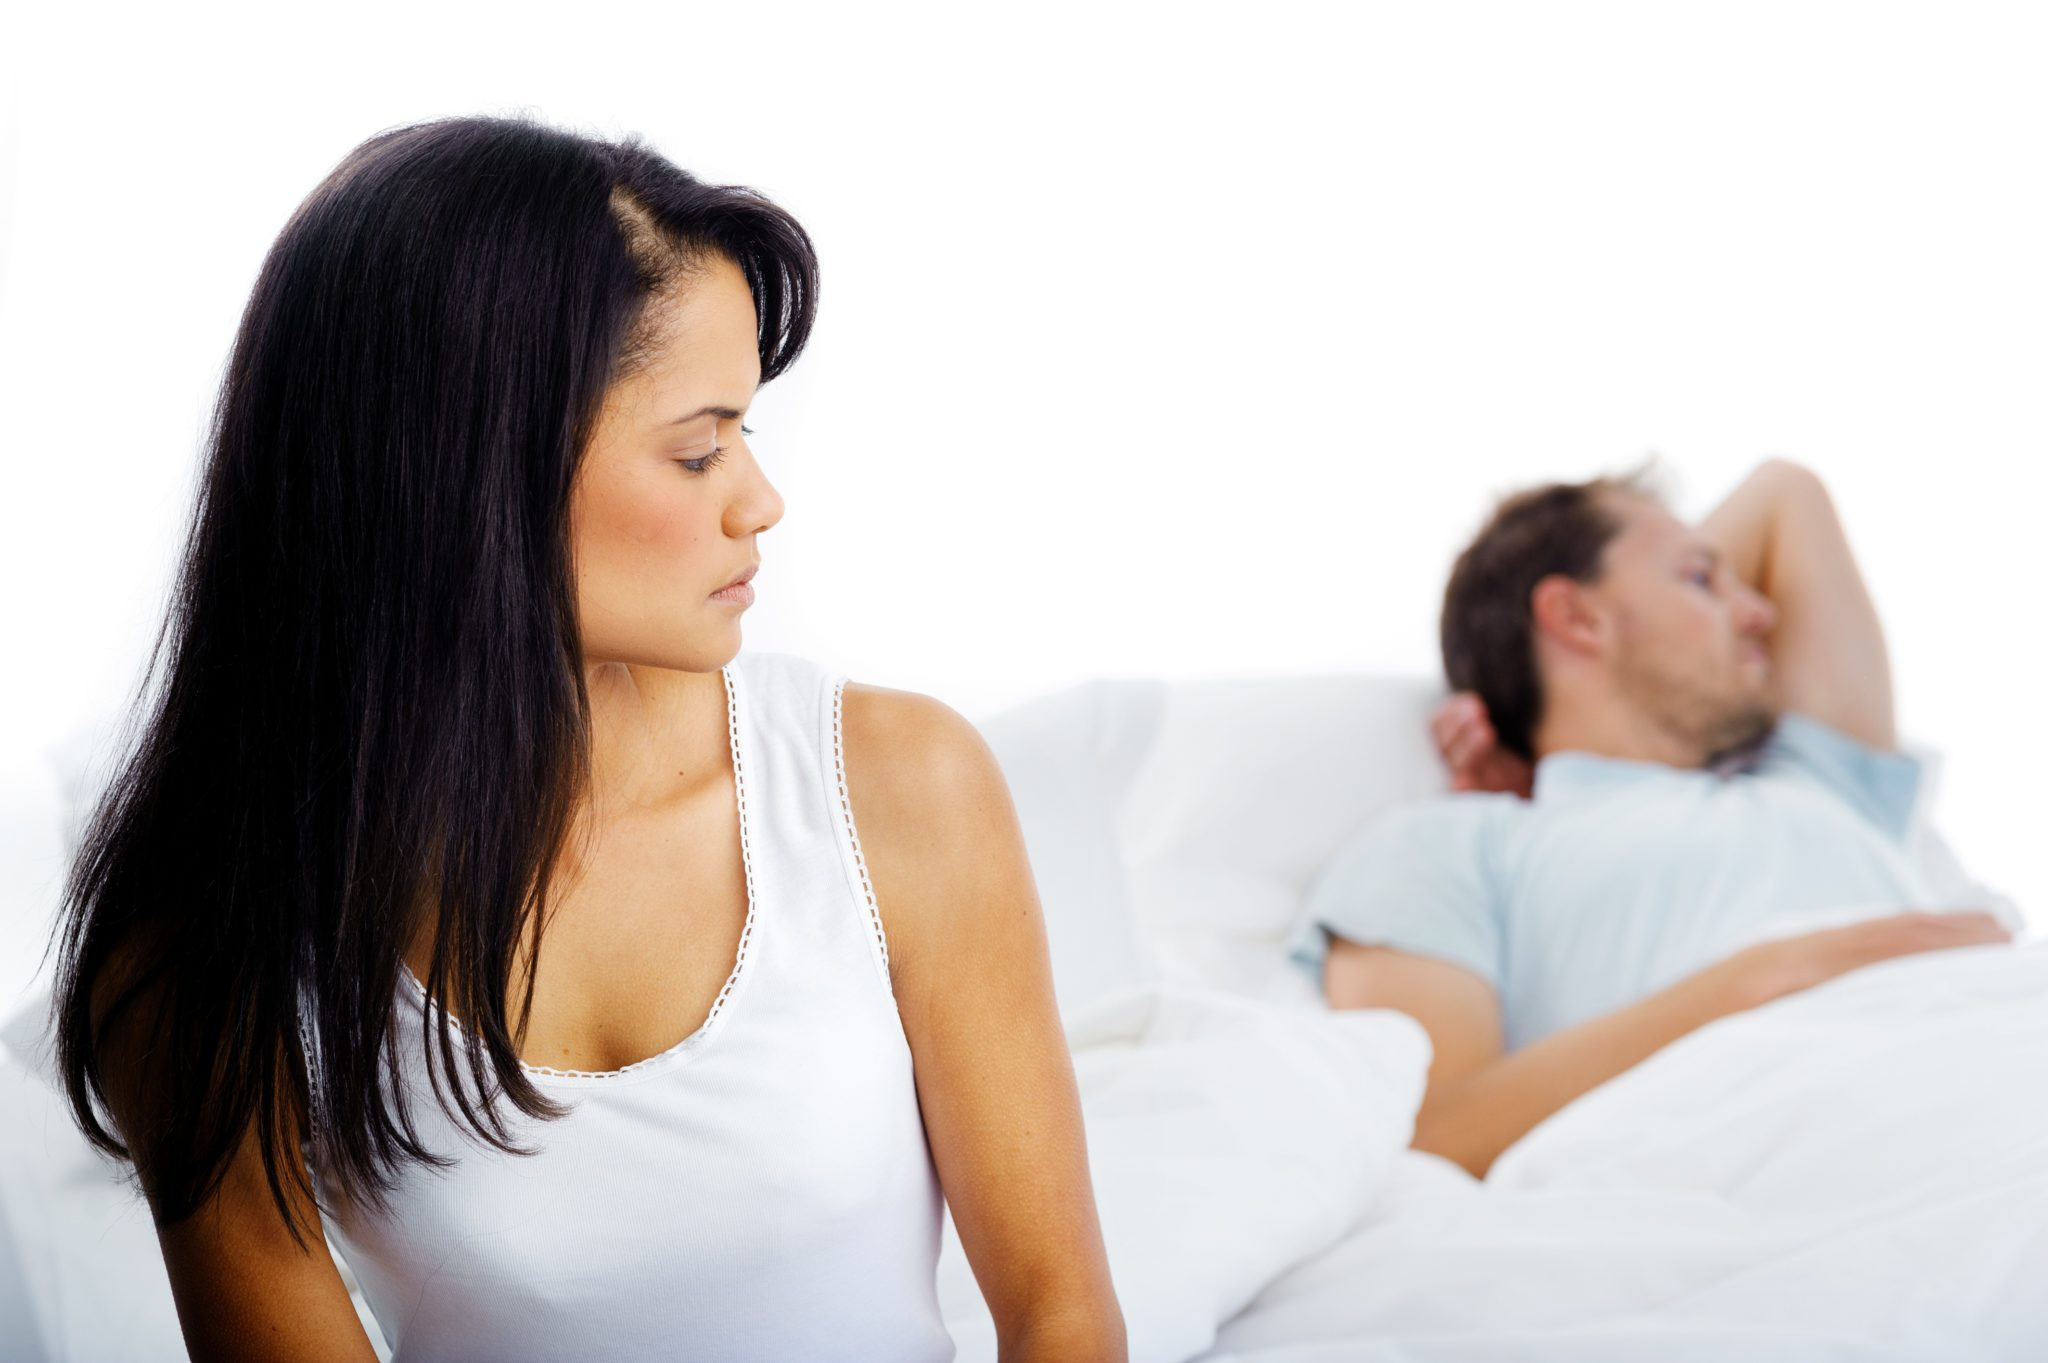 Dear Dove Bulletin readers; I don't understand my husband's obsession with sex toys